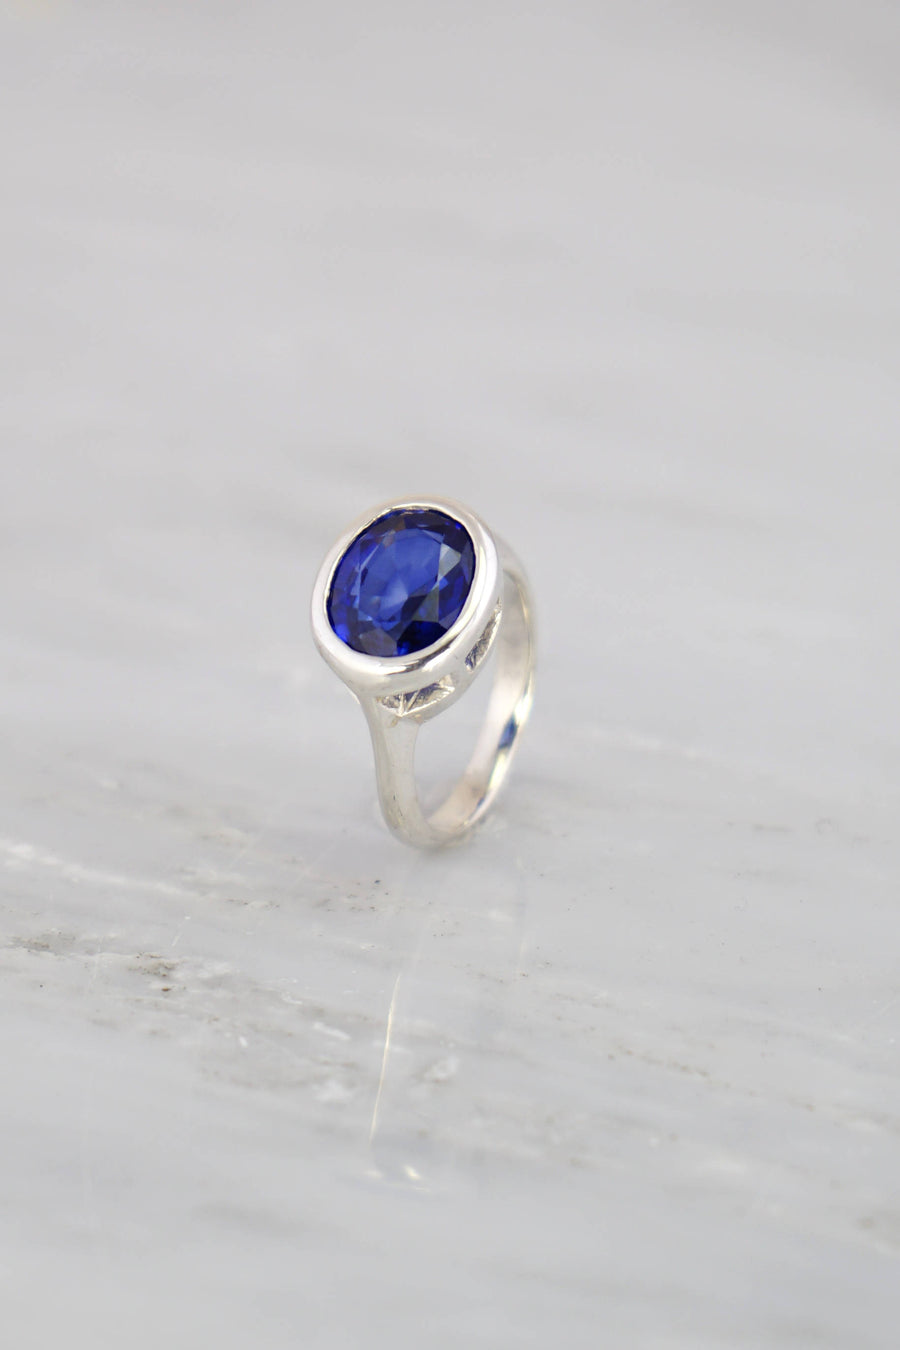 Blue Sapphire Ring, Silver Stackable ring, September Birthstone Ring, Stacking ring, Blue Gemstone Ring, Oval Shape ring, Sterling silver